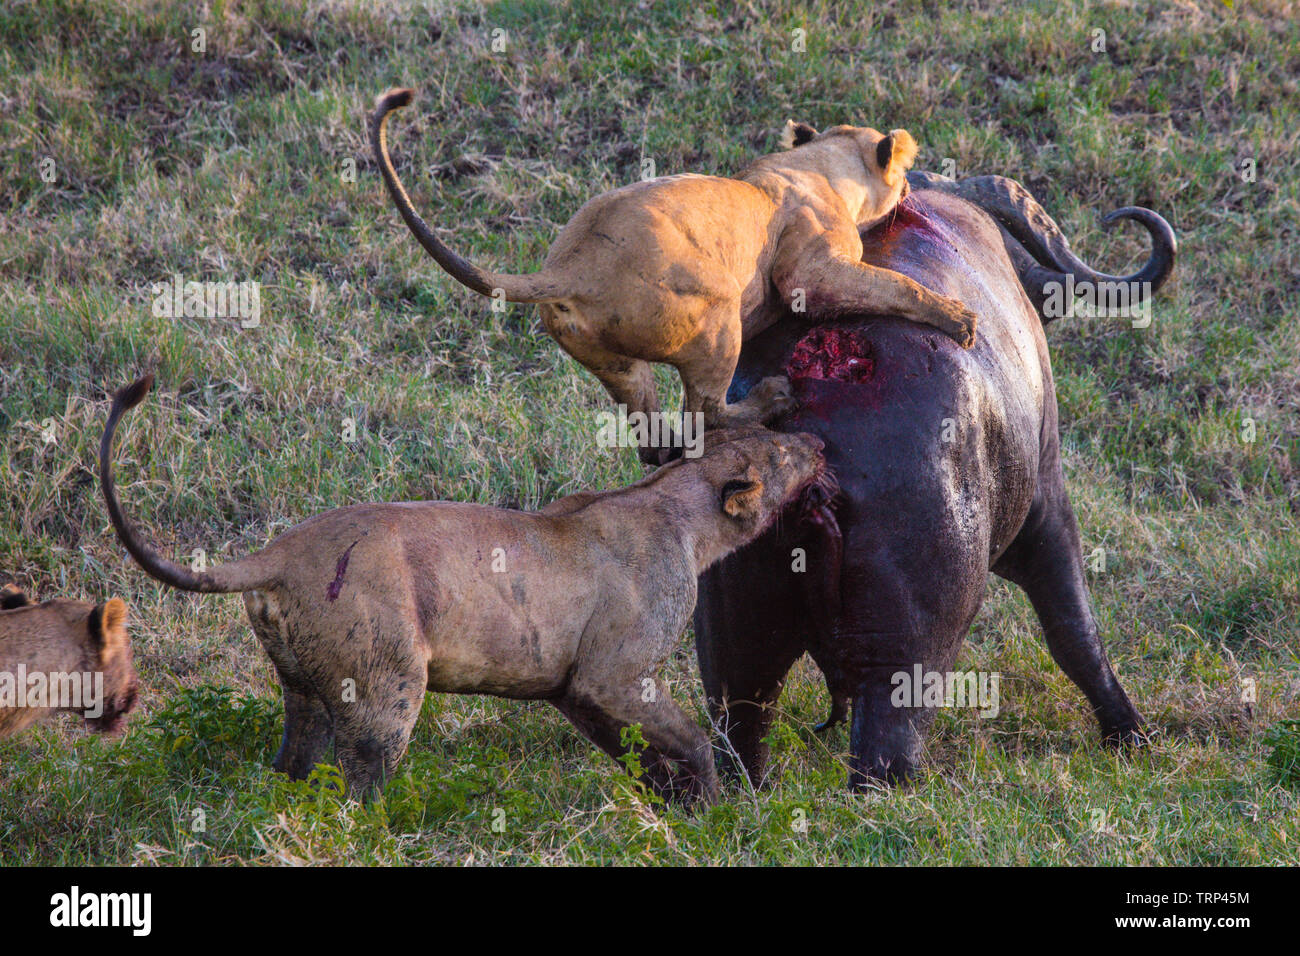 Lion Hunting Buffalo Stock Photos & Lion Hunting Buffalo